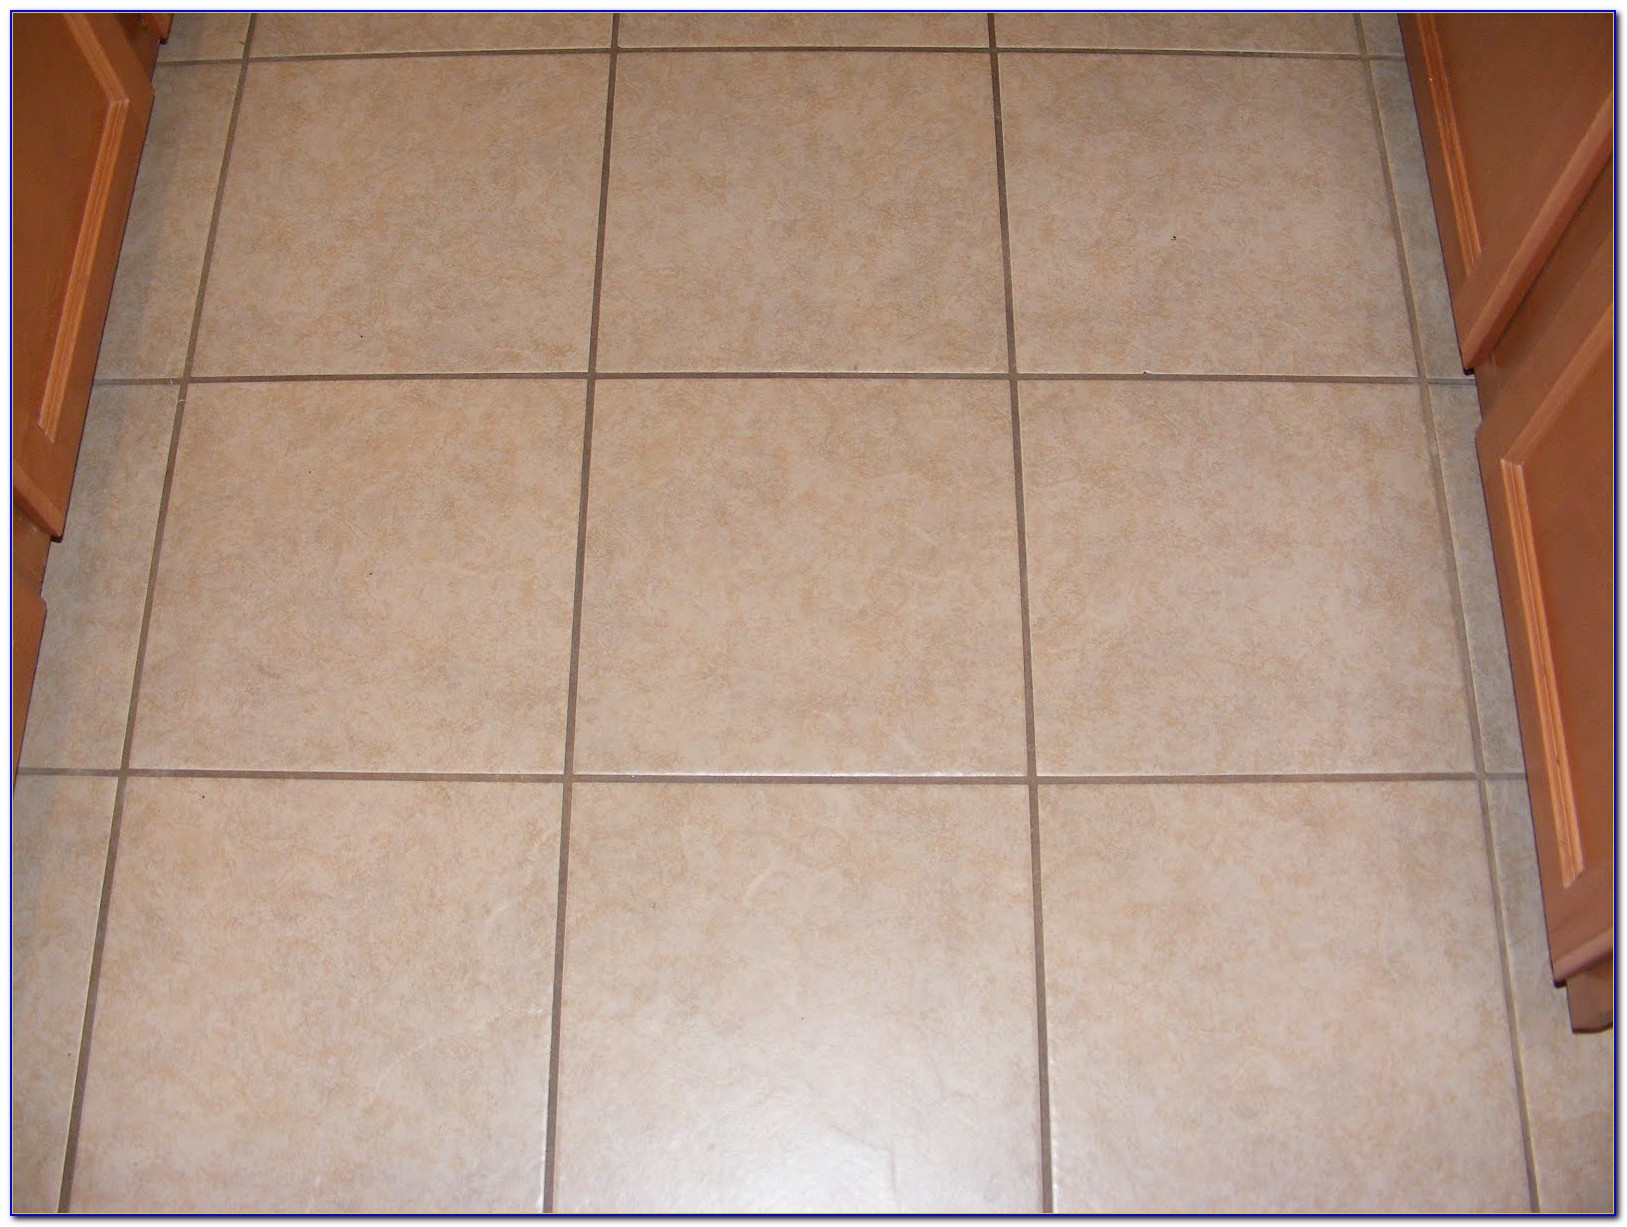 Best Mops For Tile And Wood Floors